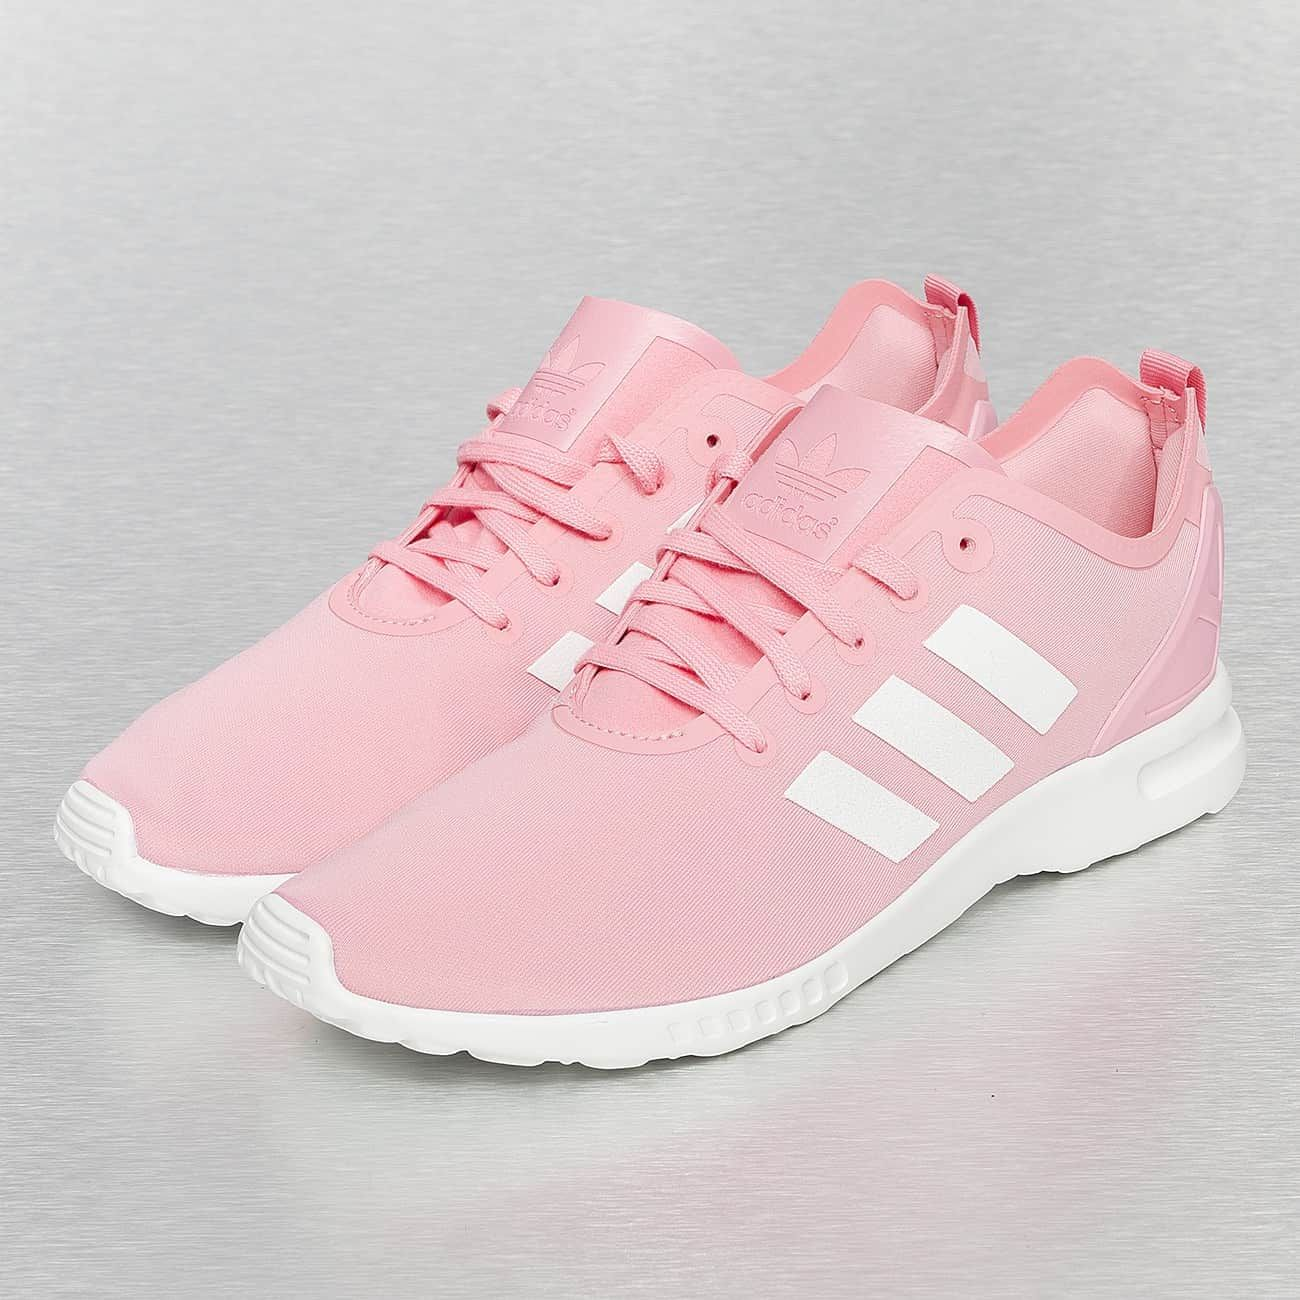 official site amazing selection reliable quality adidas Sneaker pink in 2019 | Schuhe damen sneaker, Schuhe ...